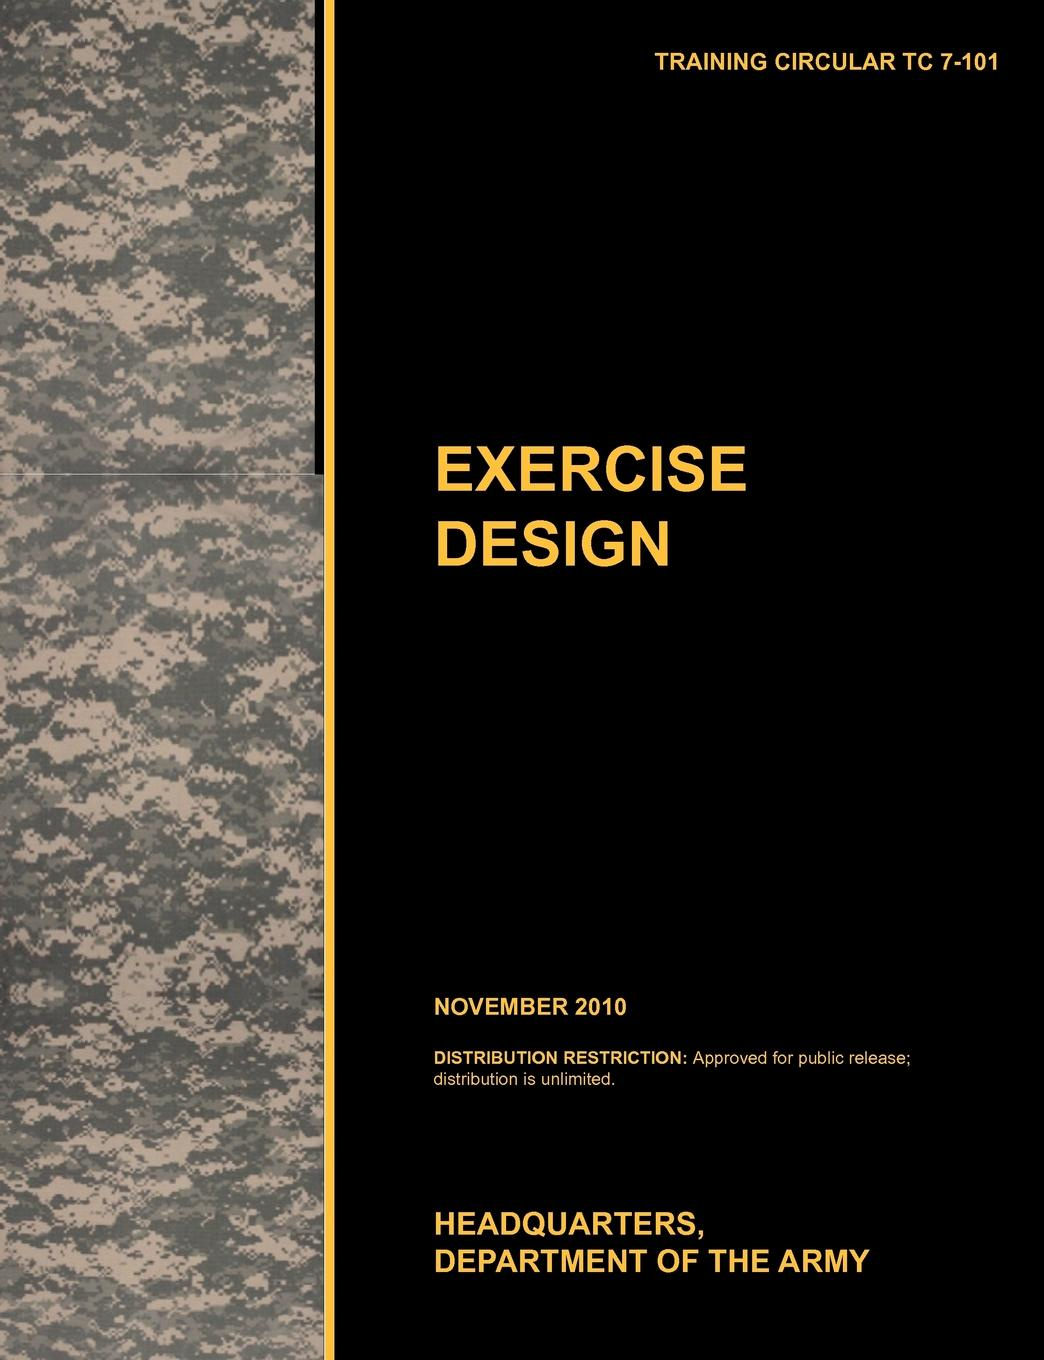 U. S. Army Training and Doctrine Command, U. S. Department of the Army Excercise Design. The Official U.S. Army Training Manual Tc 7-101 November 2010) us army military uniform for men training digital camouflage suit pilots parachuted outdoor summer training suit